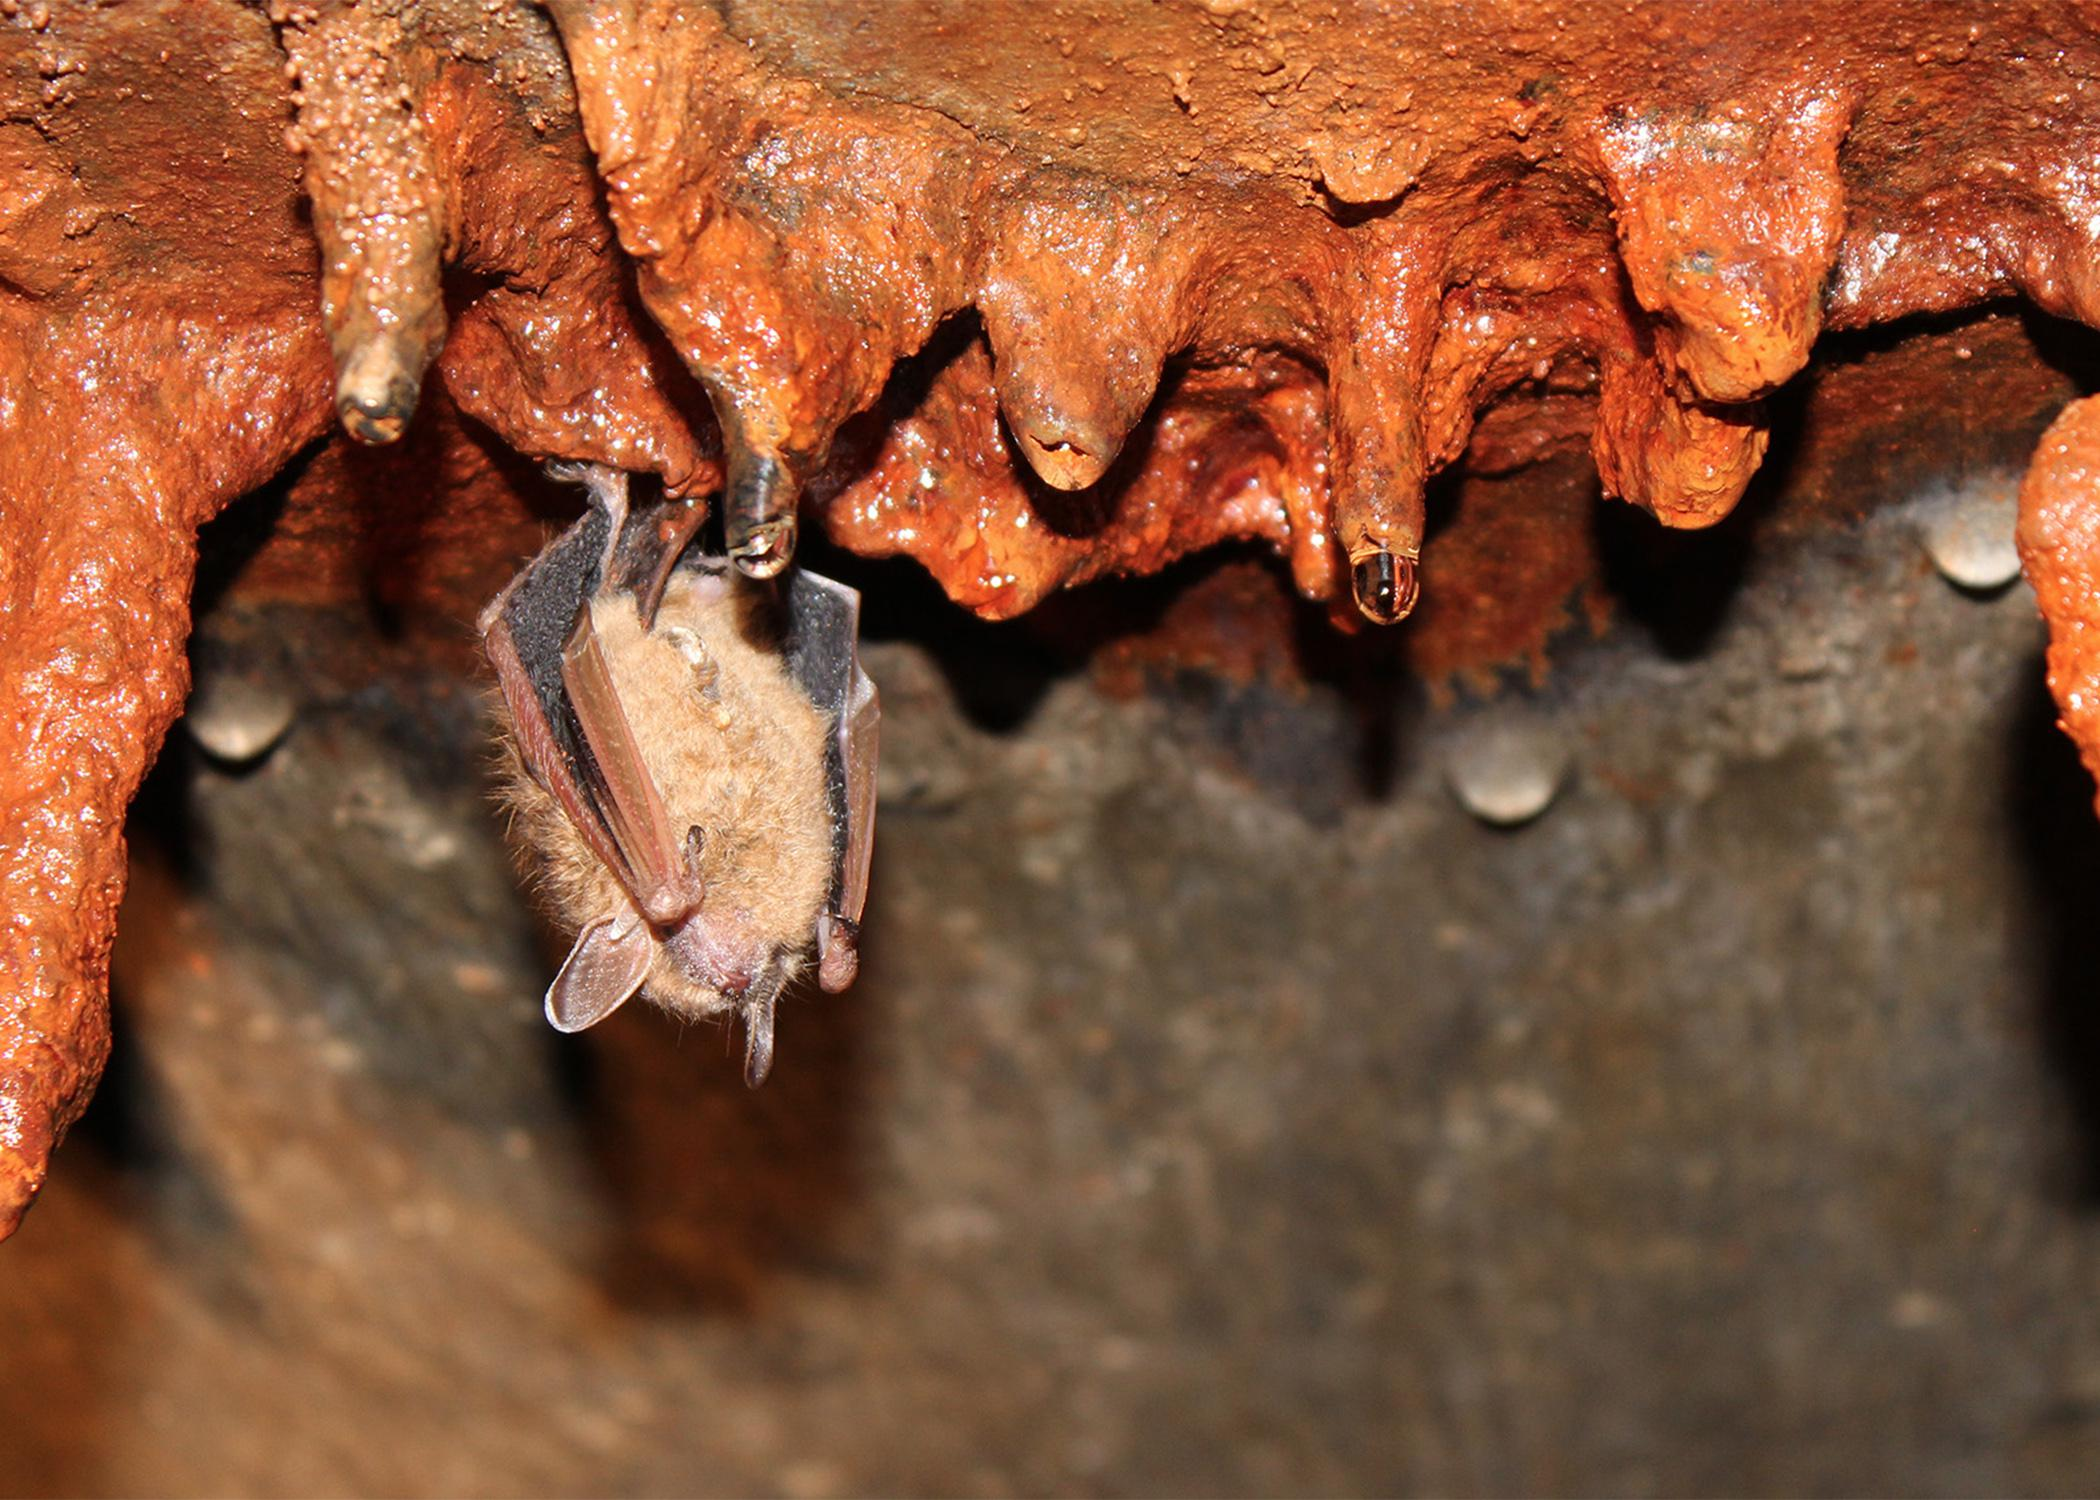 Bats eat about 50 percent of their body weight in insects every night, performing an important pest control service that benefits human health, agriculture, horticulture and forestry. (File Photo by MSU Ag Communications)